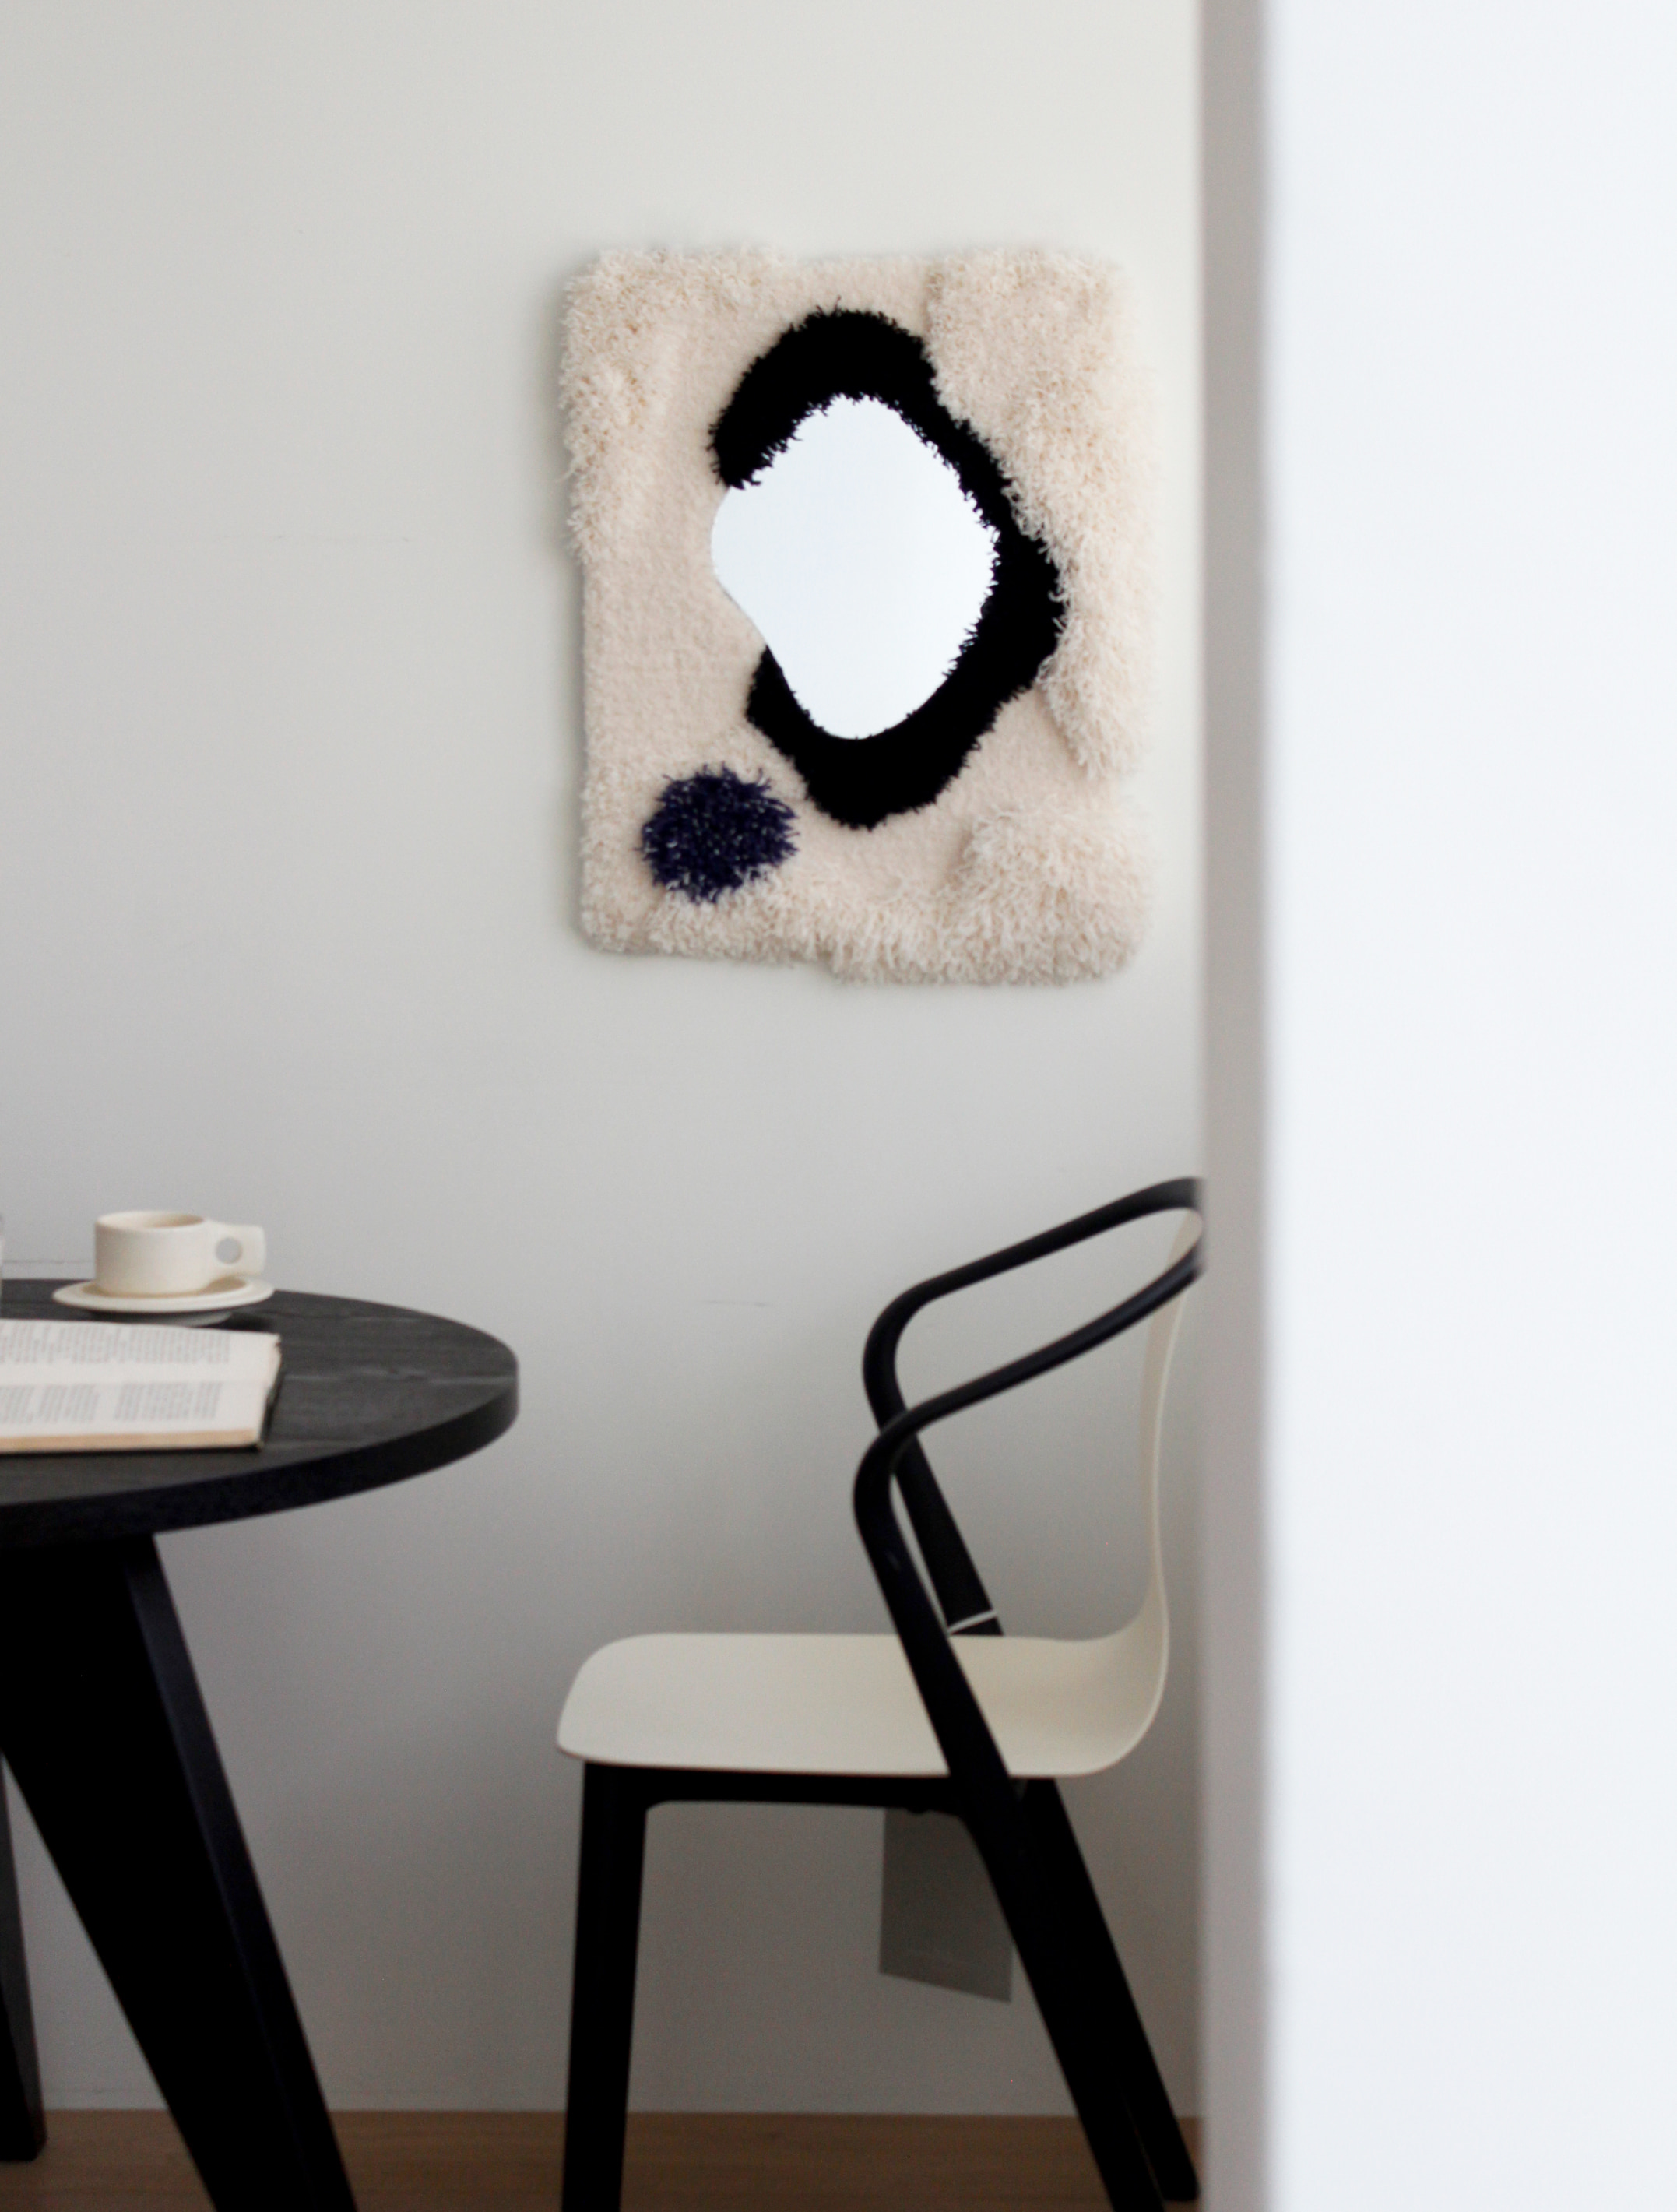 Fluffy Pebble Mirror (Black&Blue)